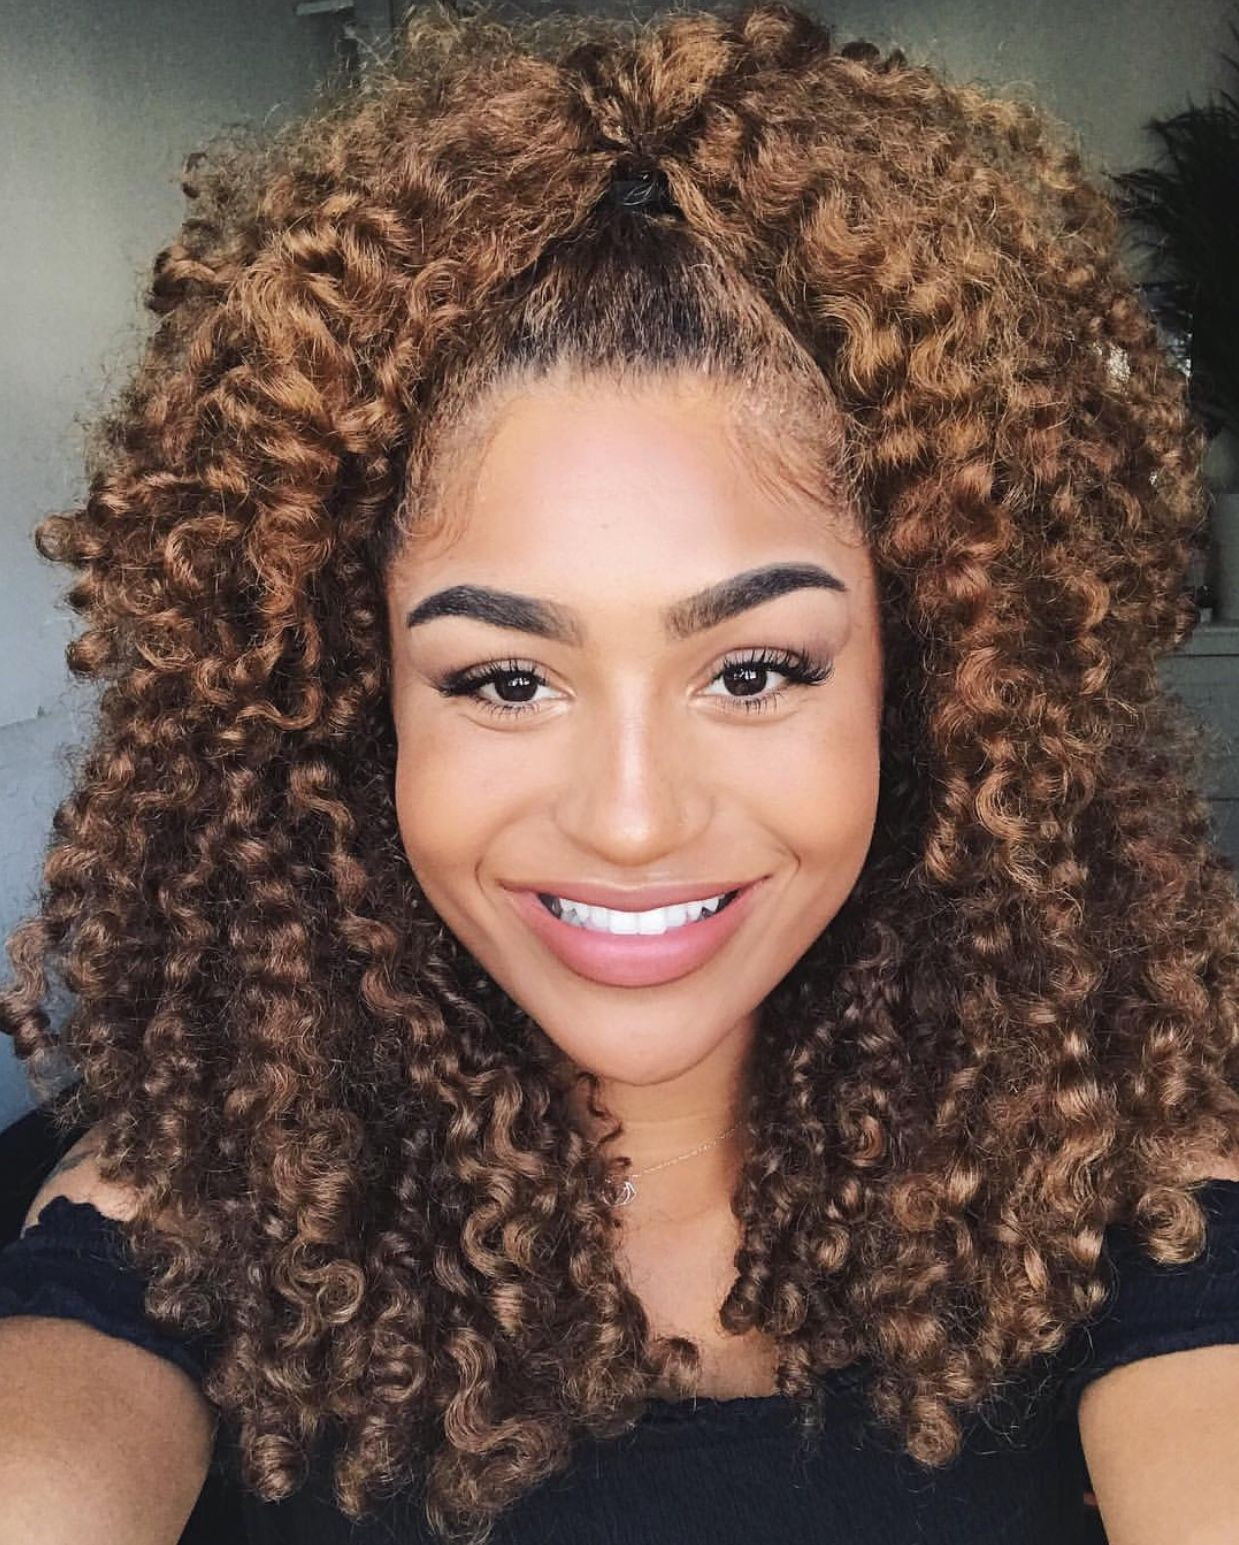 Best ideas about Pinterest Natural Hairstyles . Save or Pin pinterest evellynlouyse Curly hair in 2019 Now.